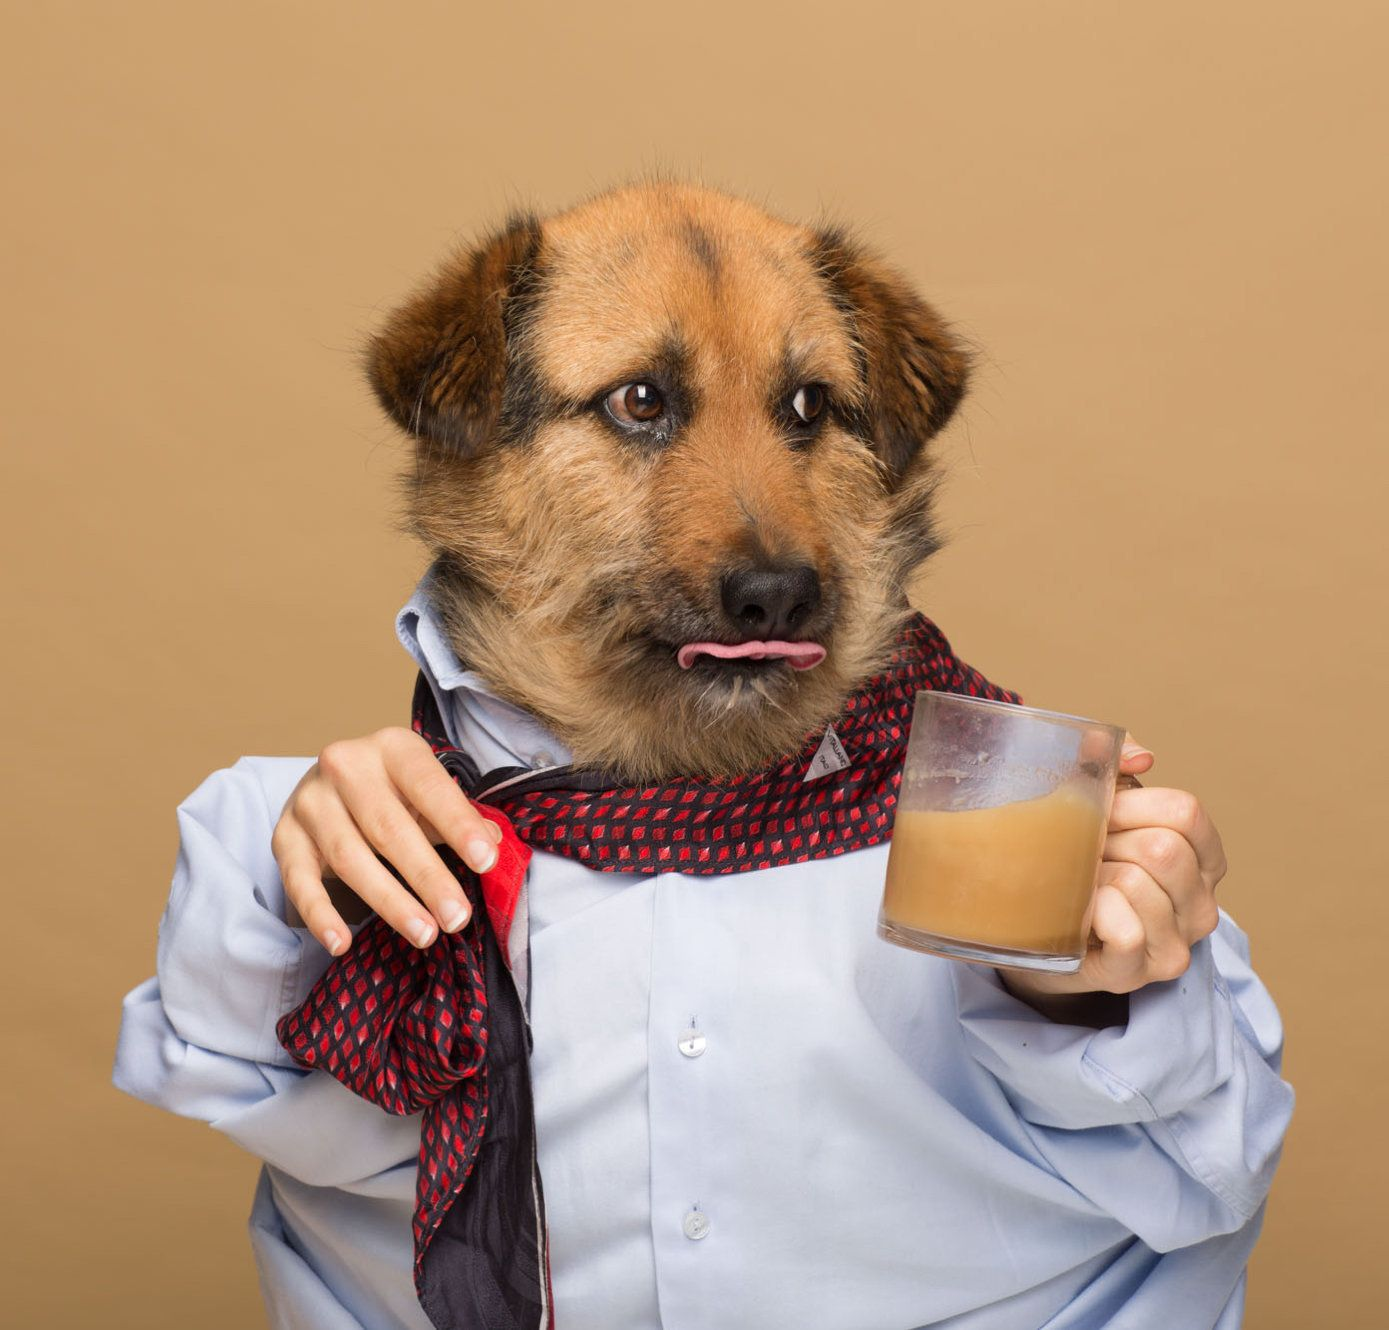 """Crete, one of Agota Jakutyte's dogs, poses for an ad for """"Rooffee."""""""